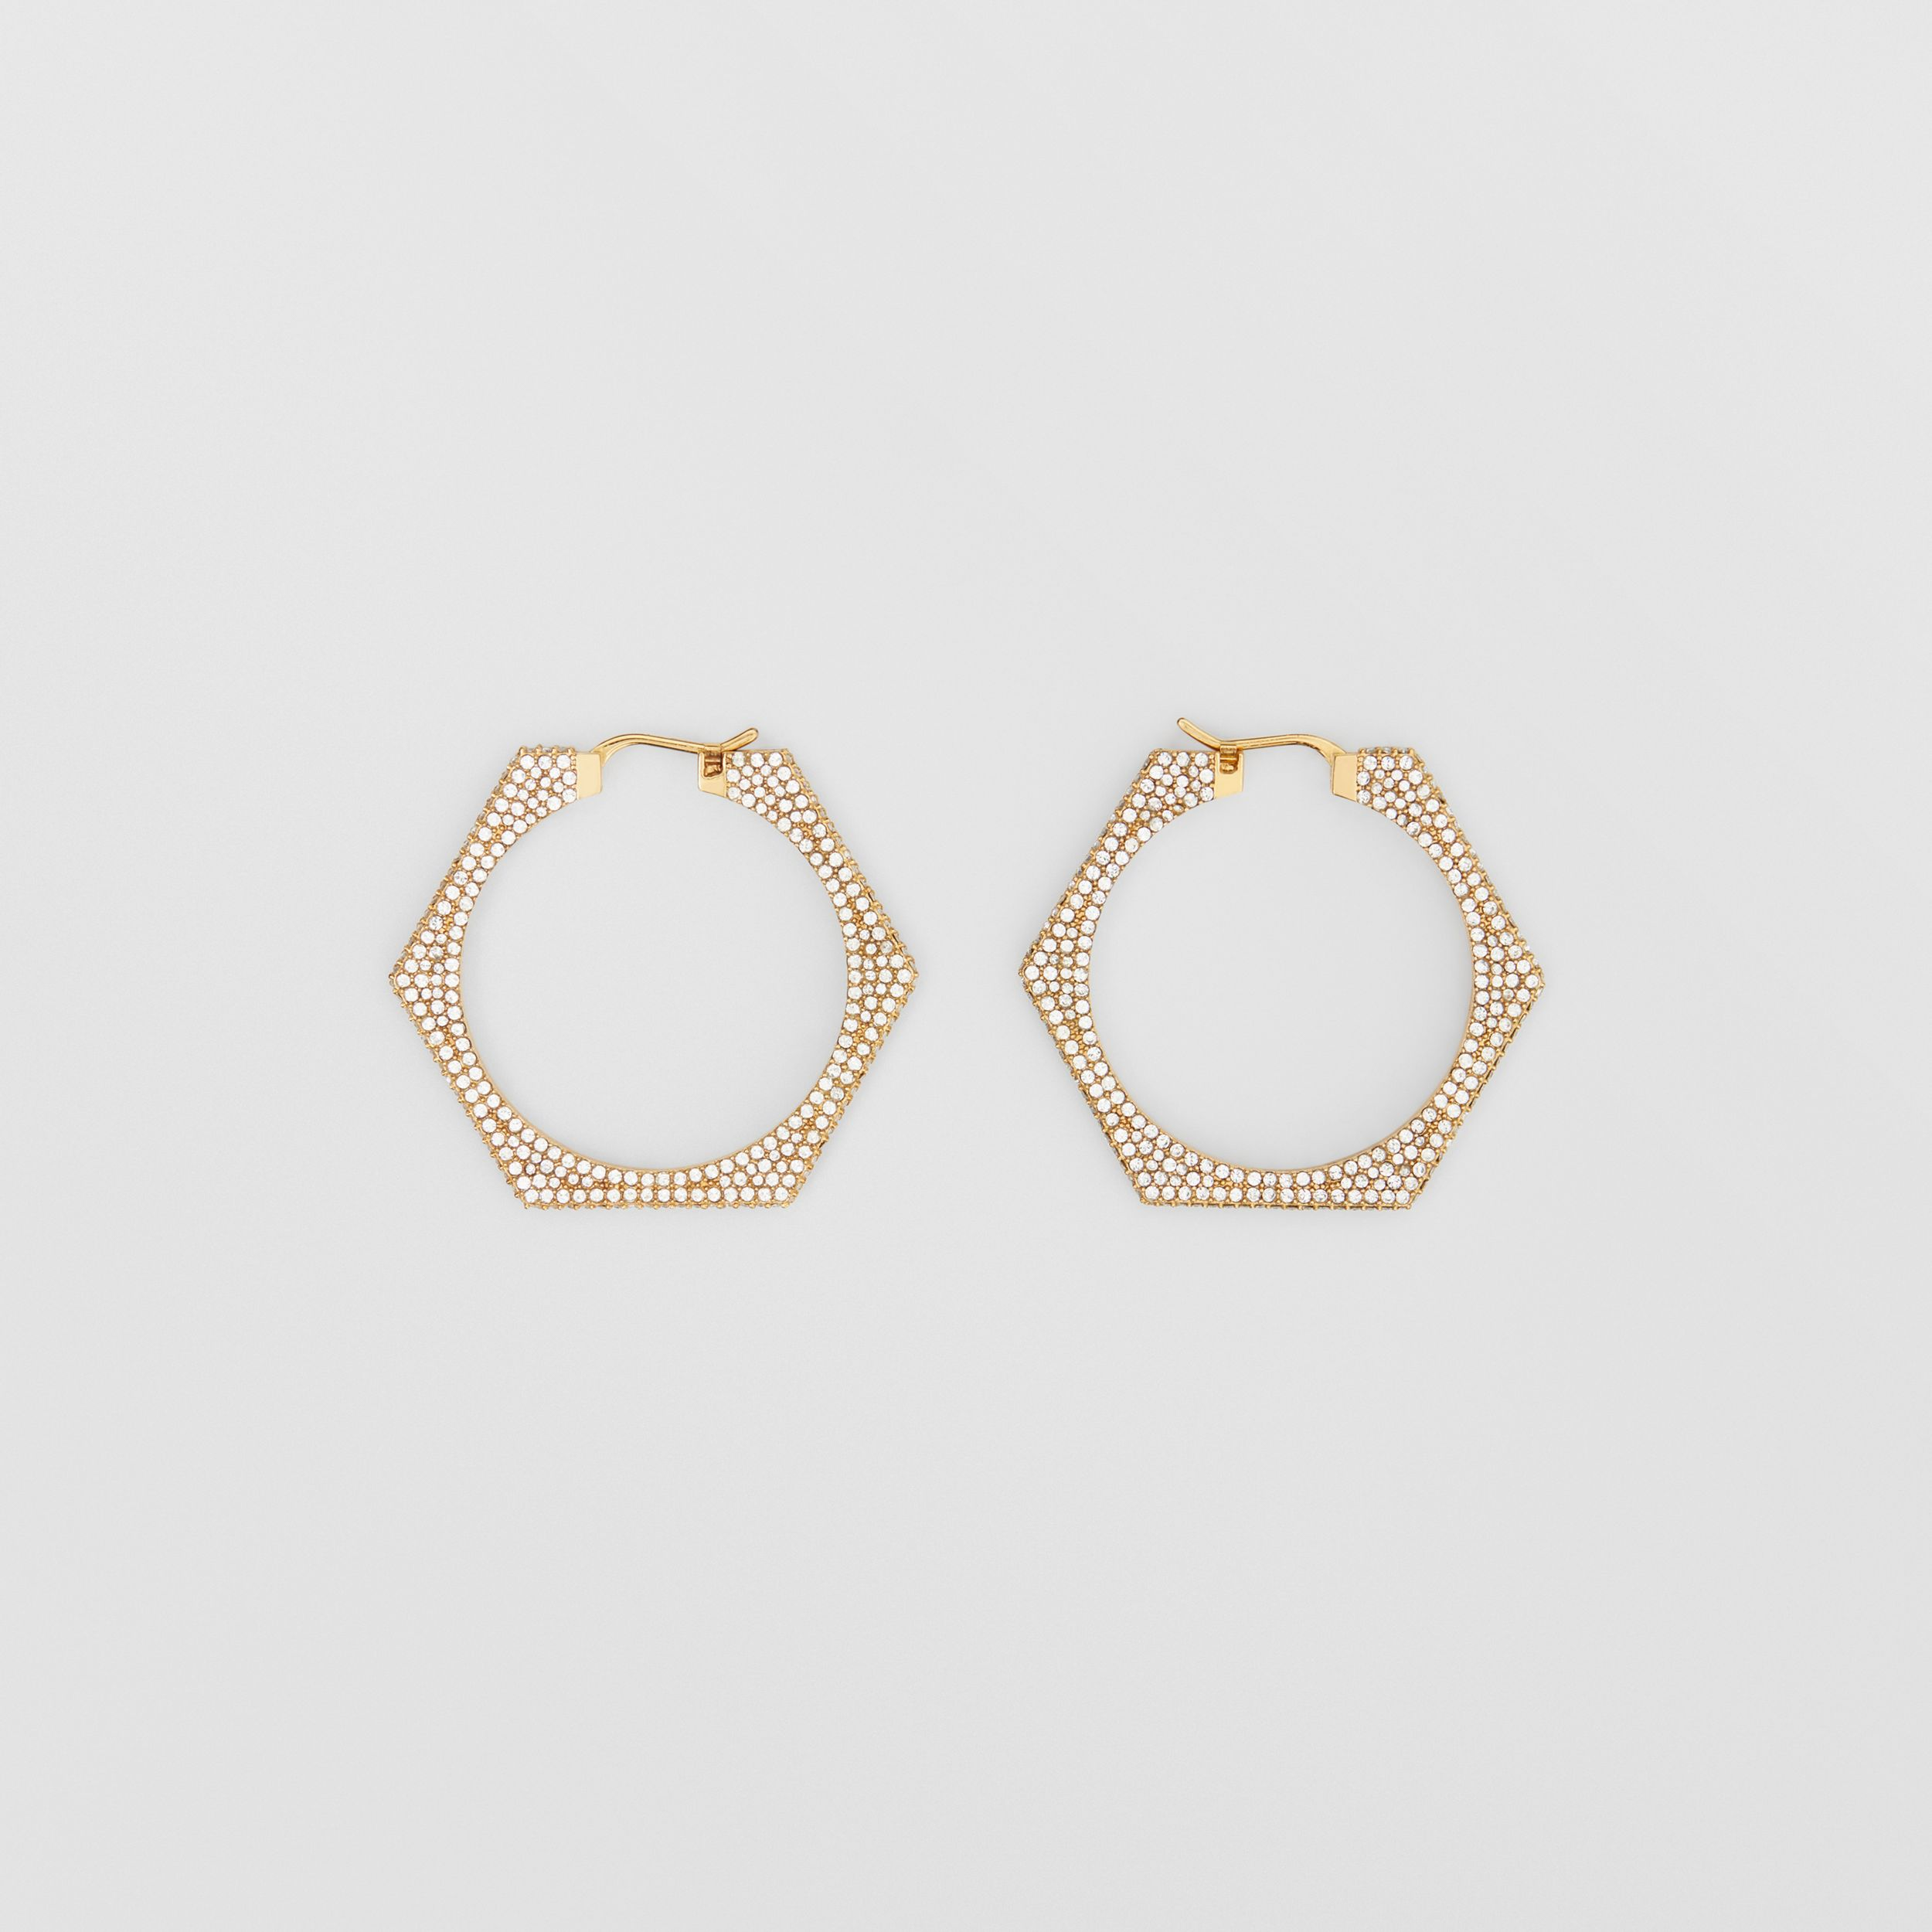 Crystal Detail Gold-plated Nut Hoop Earrings in Light Gold/crystal - Women | Burberry - 1